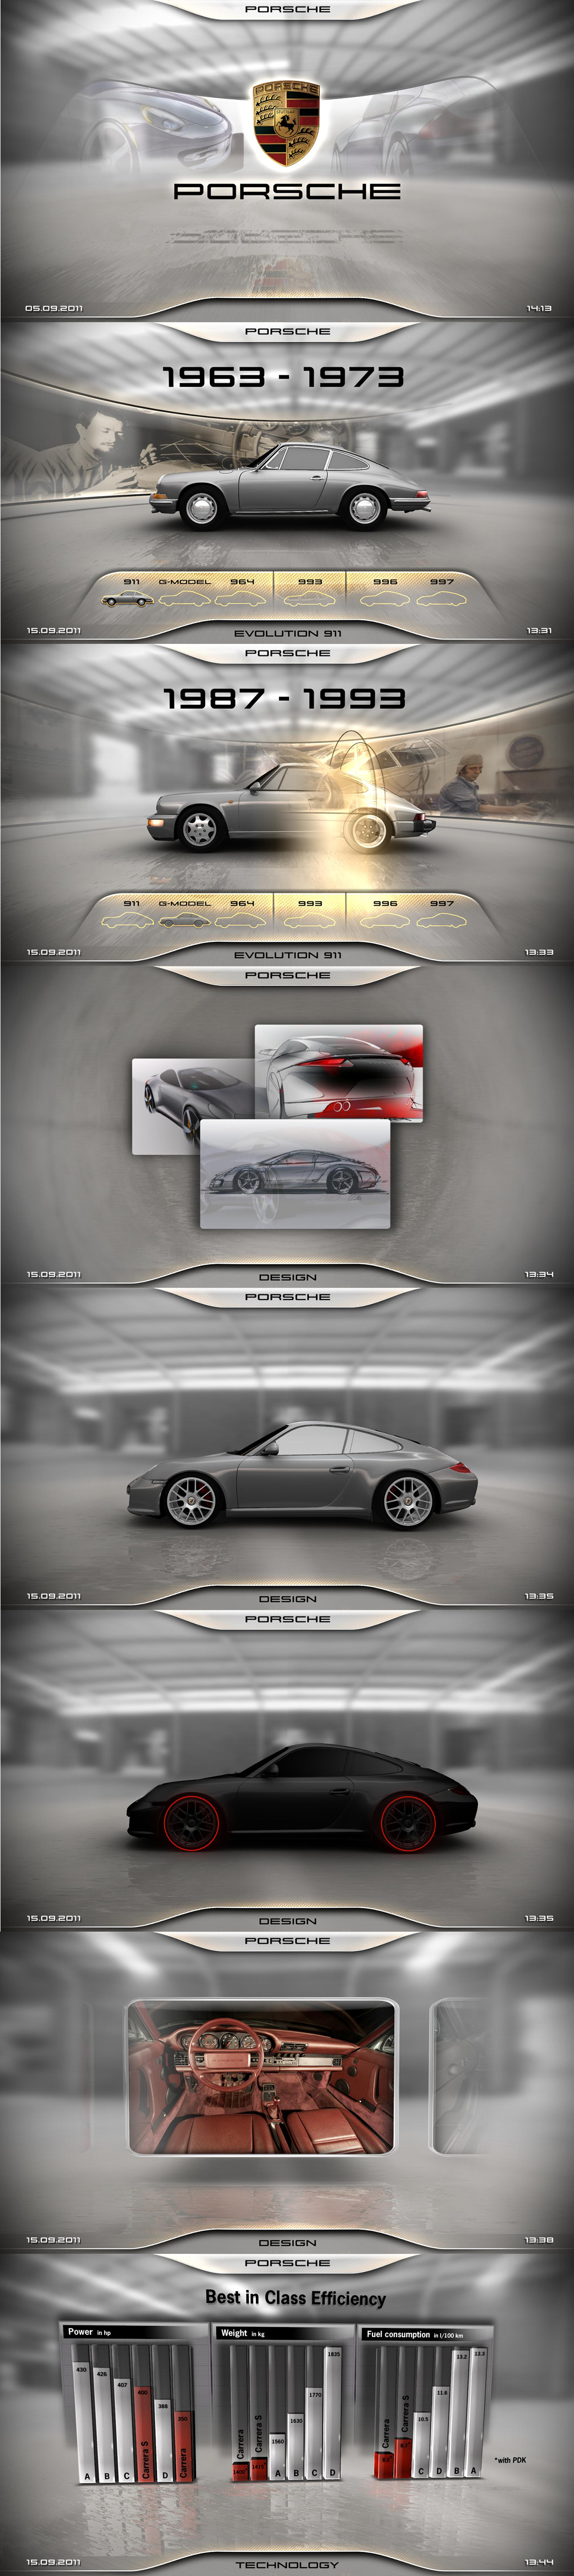 Porsche Sneak Preview by stereolize-design